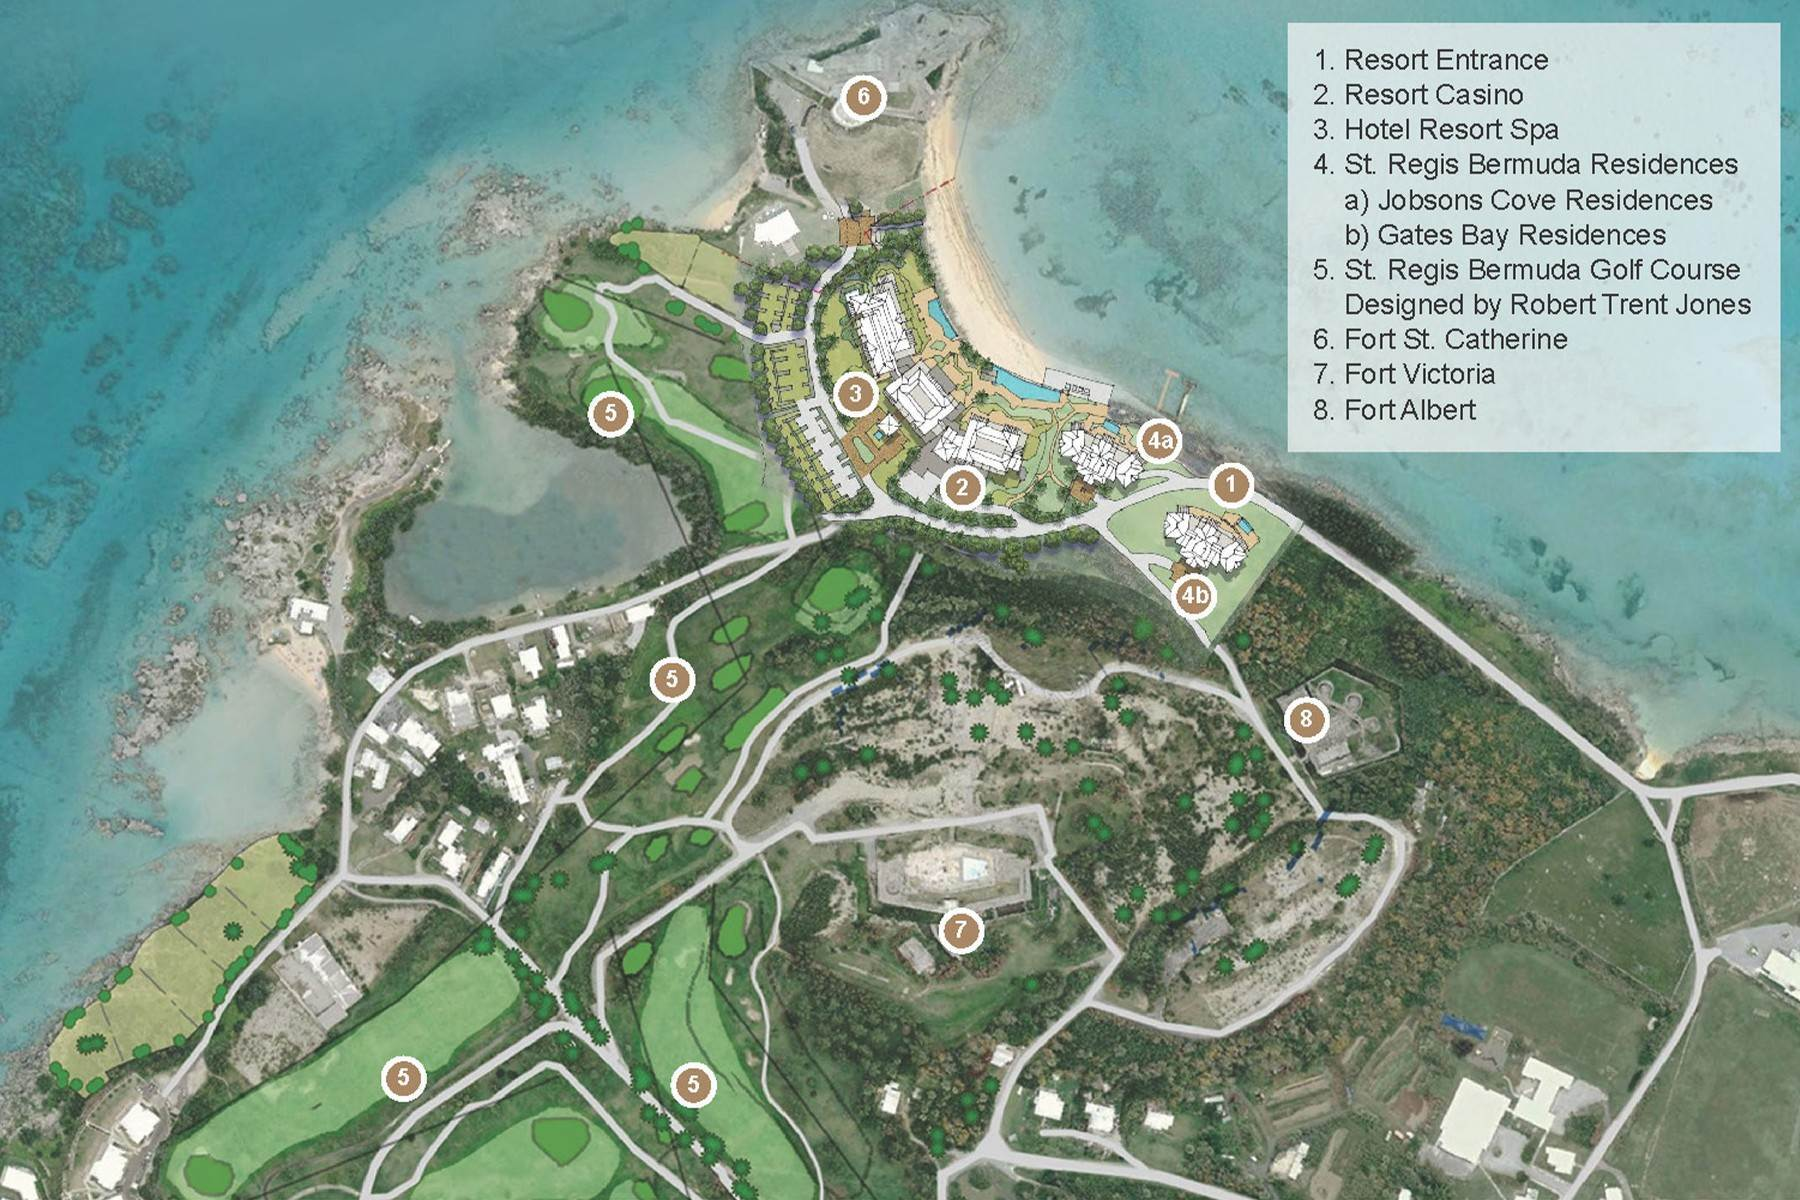 20. Condo / Townhouse / Flat for Sale at St. Regis Bermuda Residences - Gates Bay 3B St. Catherine's Beach St Georges Parish, GE03 Bermuda